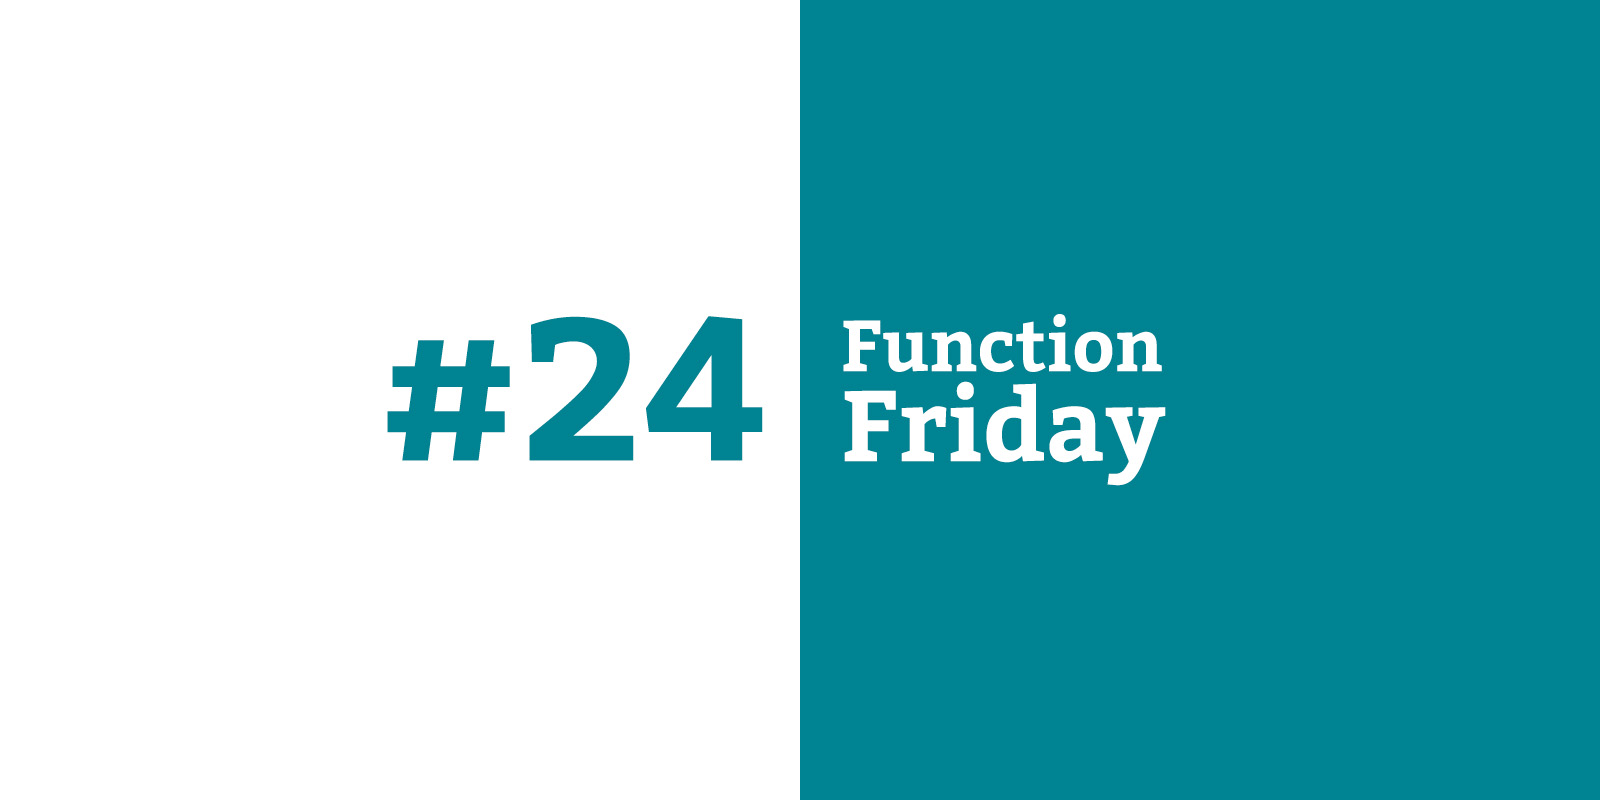 Function Friday #24